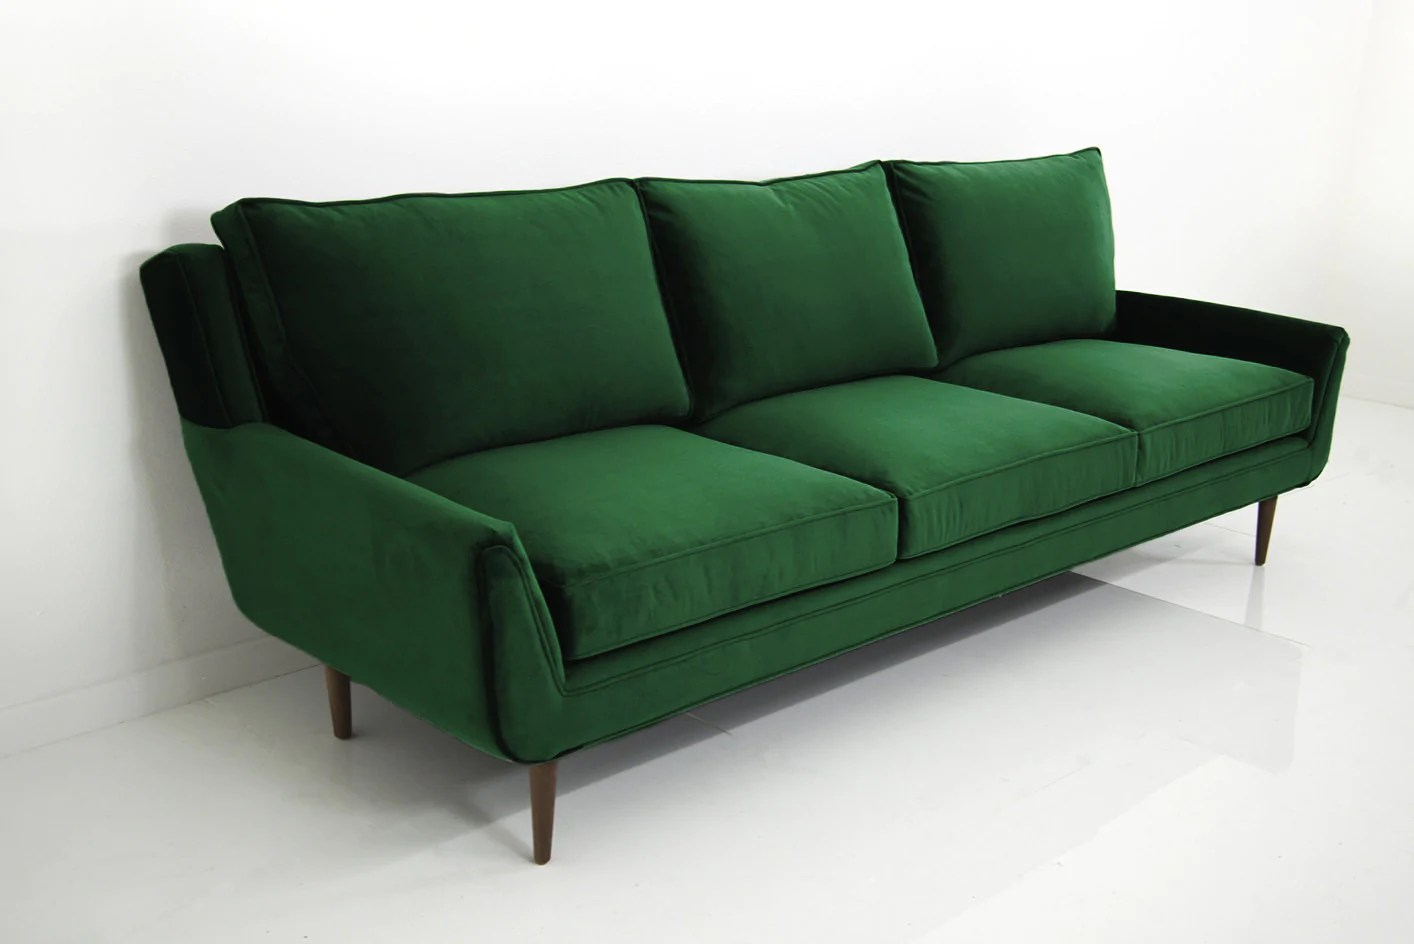 Green Settee Stockholm Sofa In Emerald Green Velvet Modshop